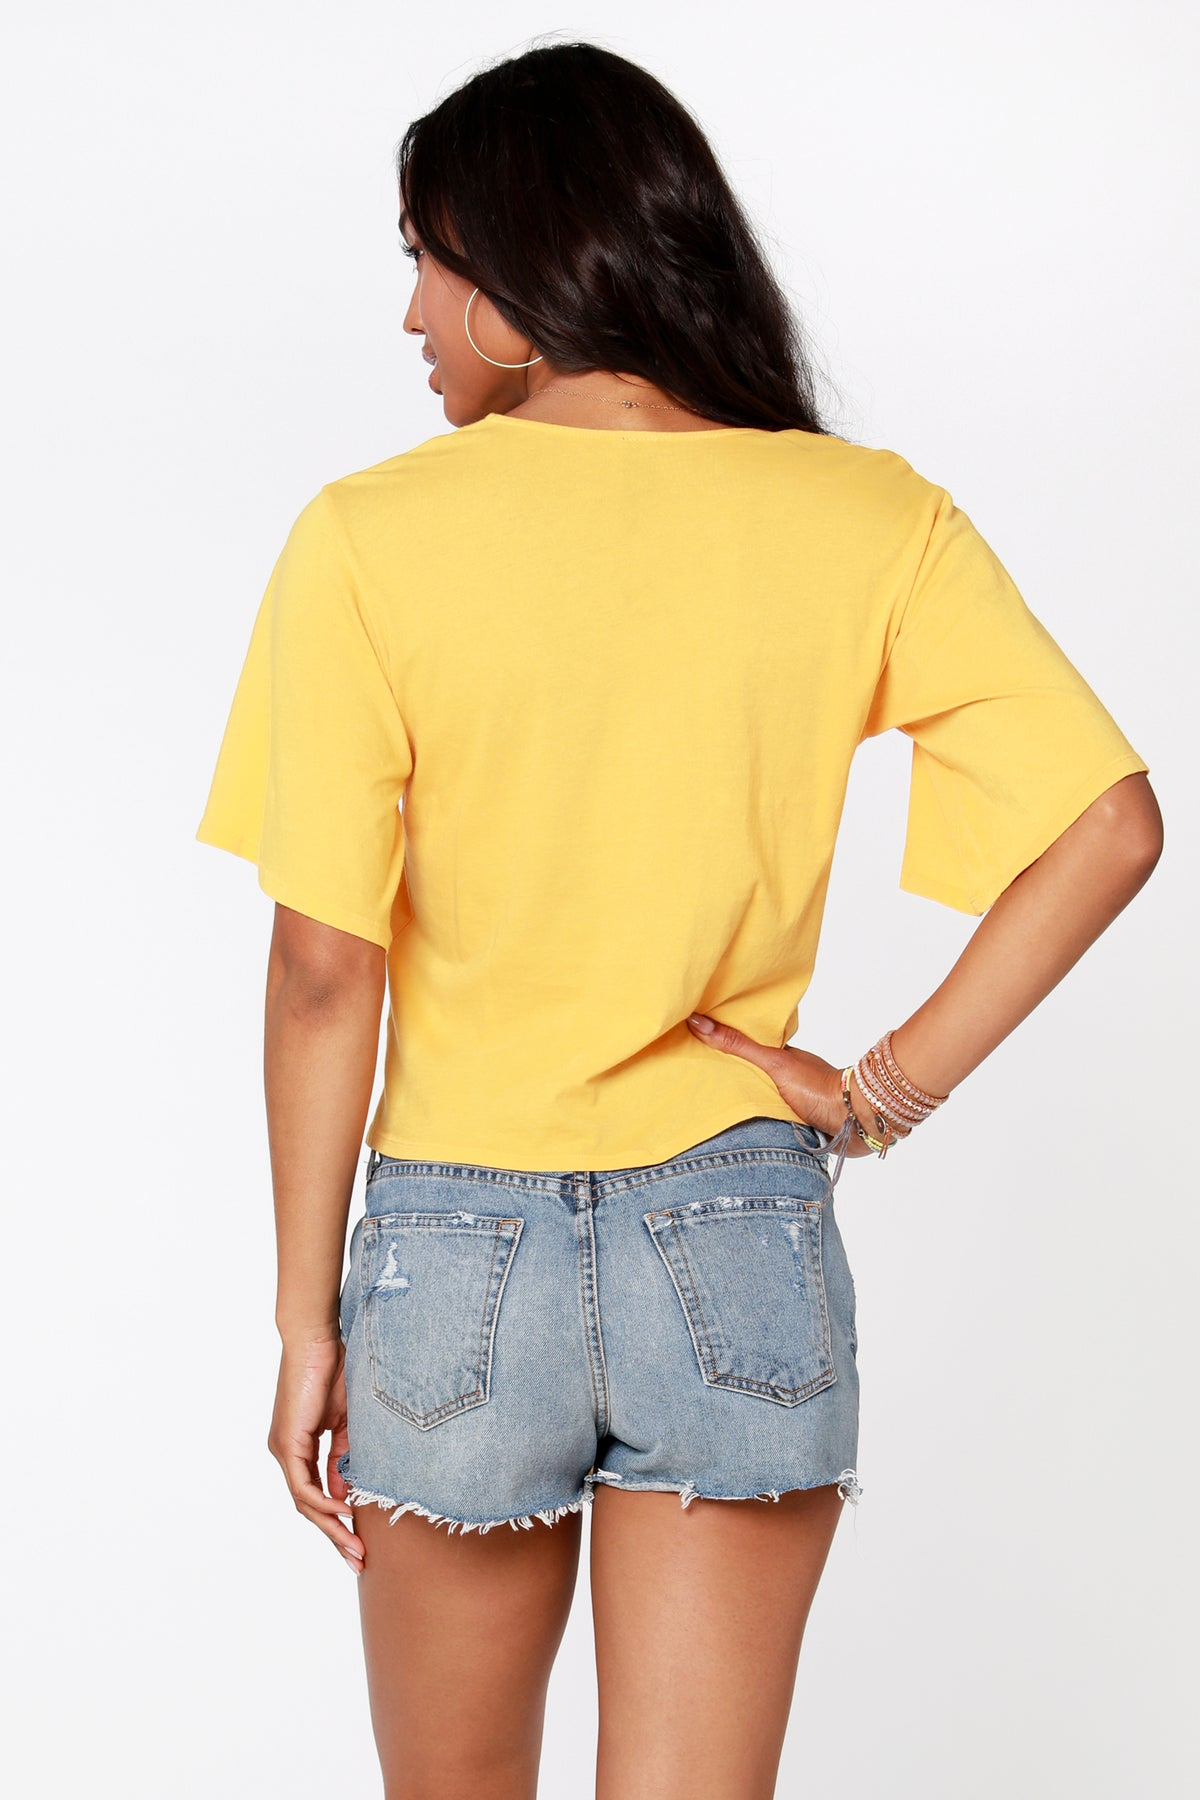 Flutter Sleeve Tie Hem Top - bobi Los Angeles